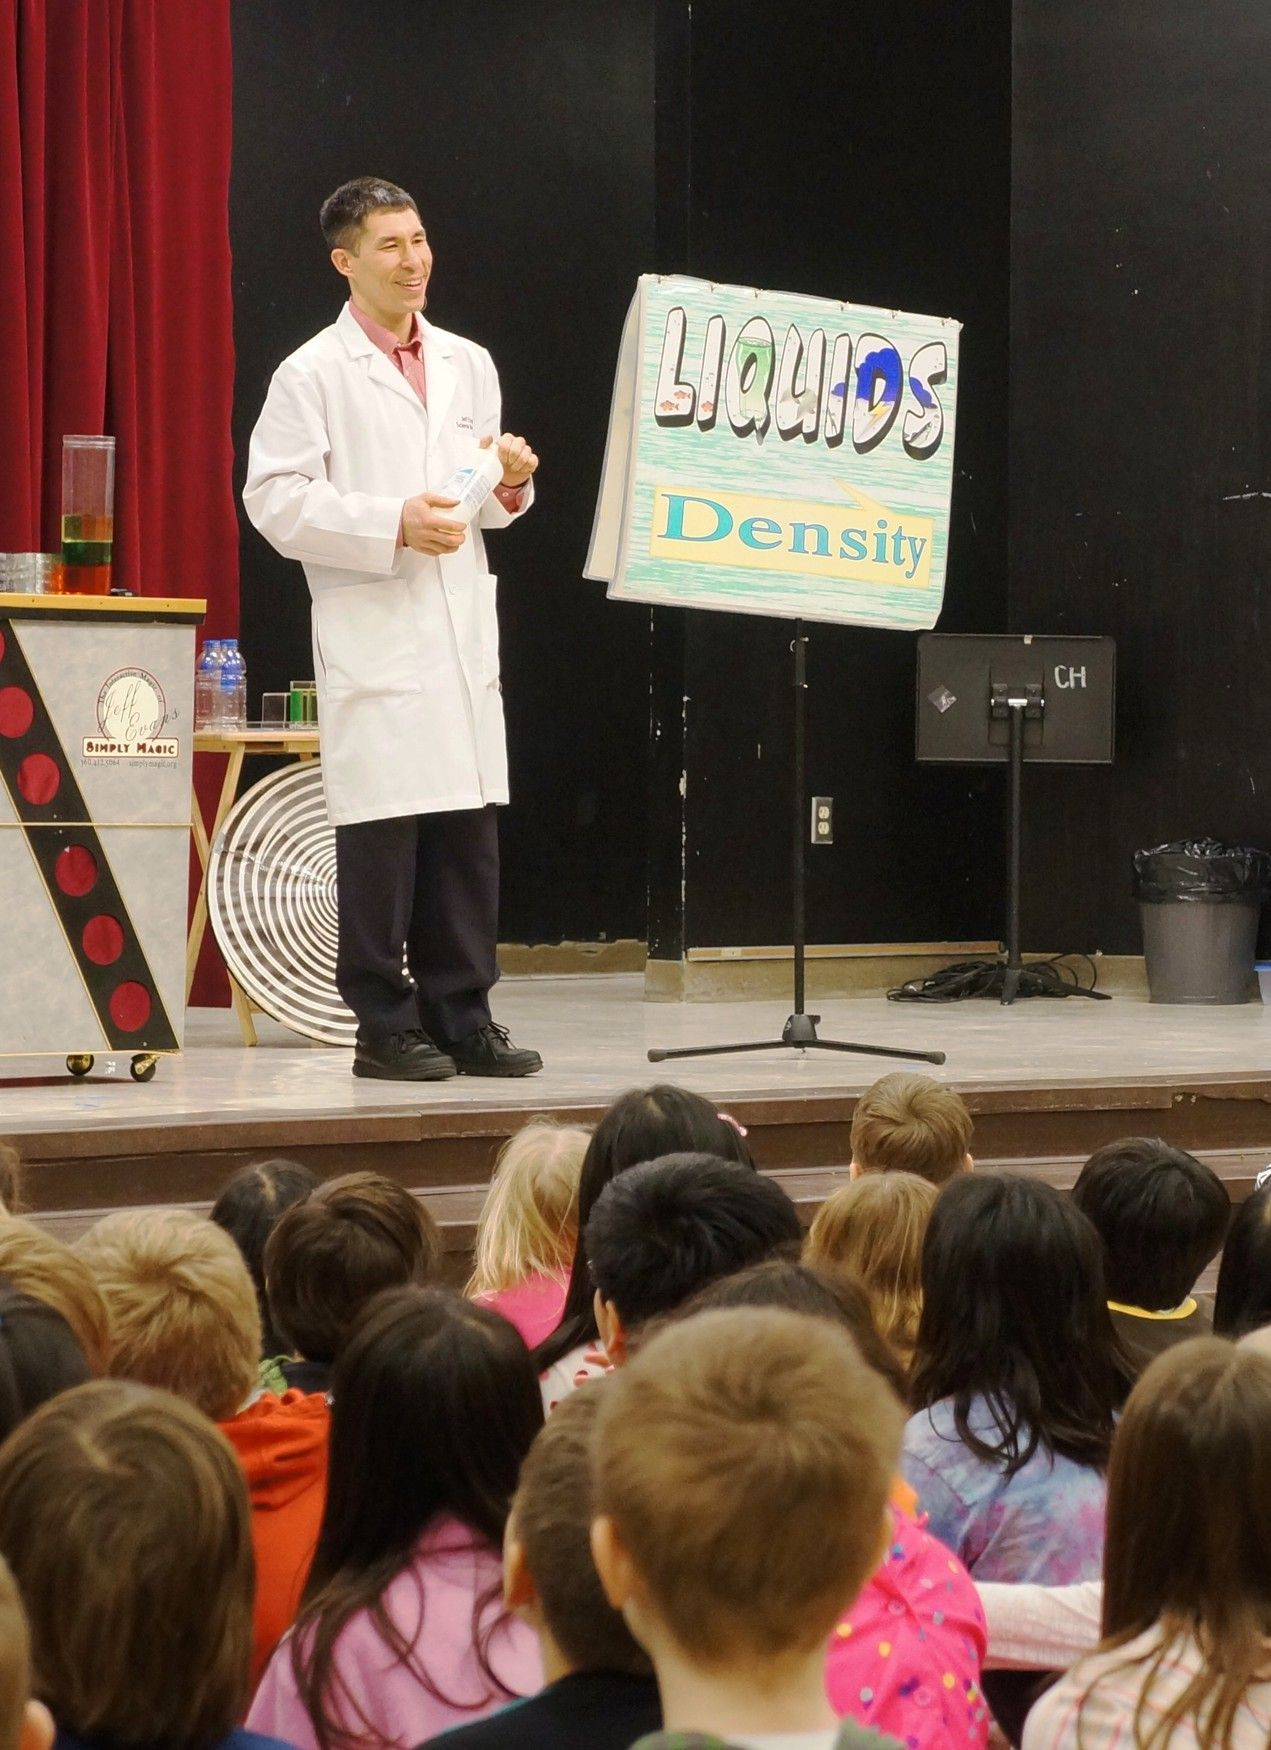 Talking about density of liquids at Challenger Elementary in Sammamish.  Their science fair is next month, and I was there to get students excited and ready to participate.